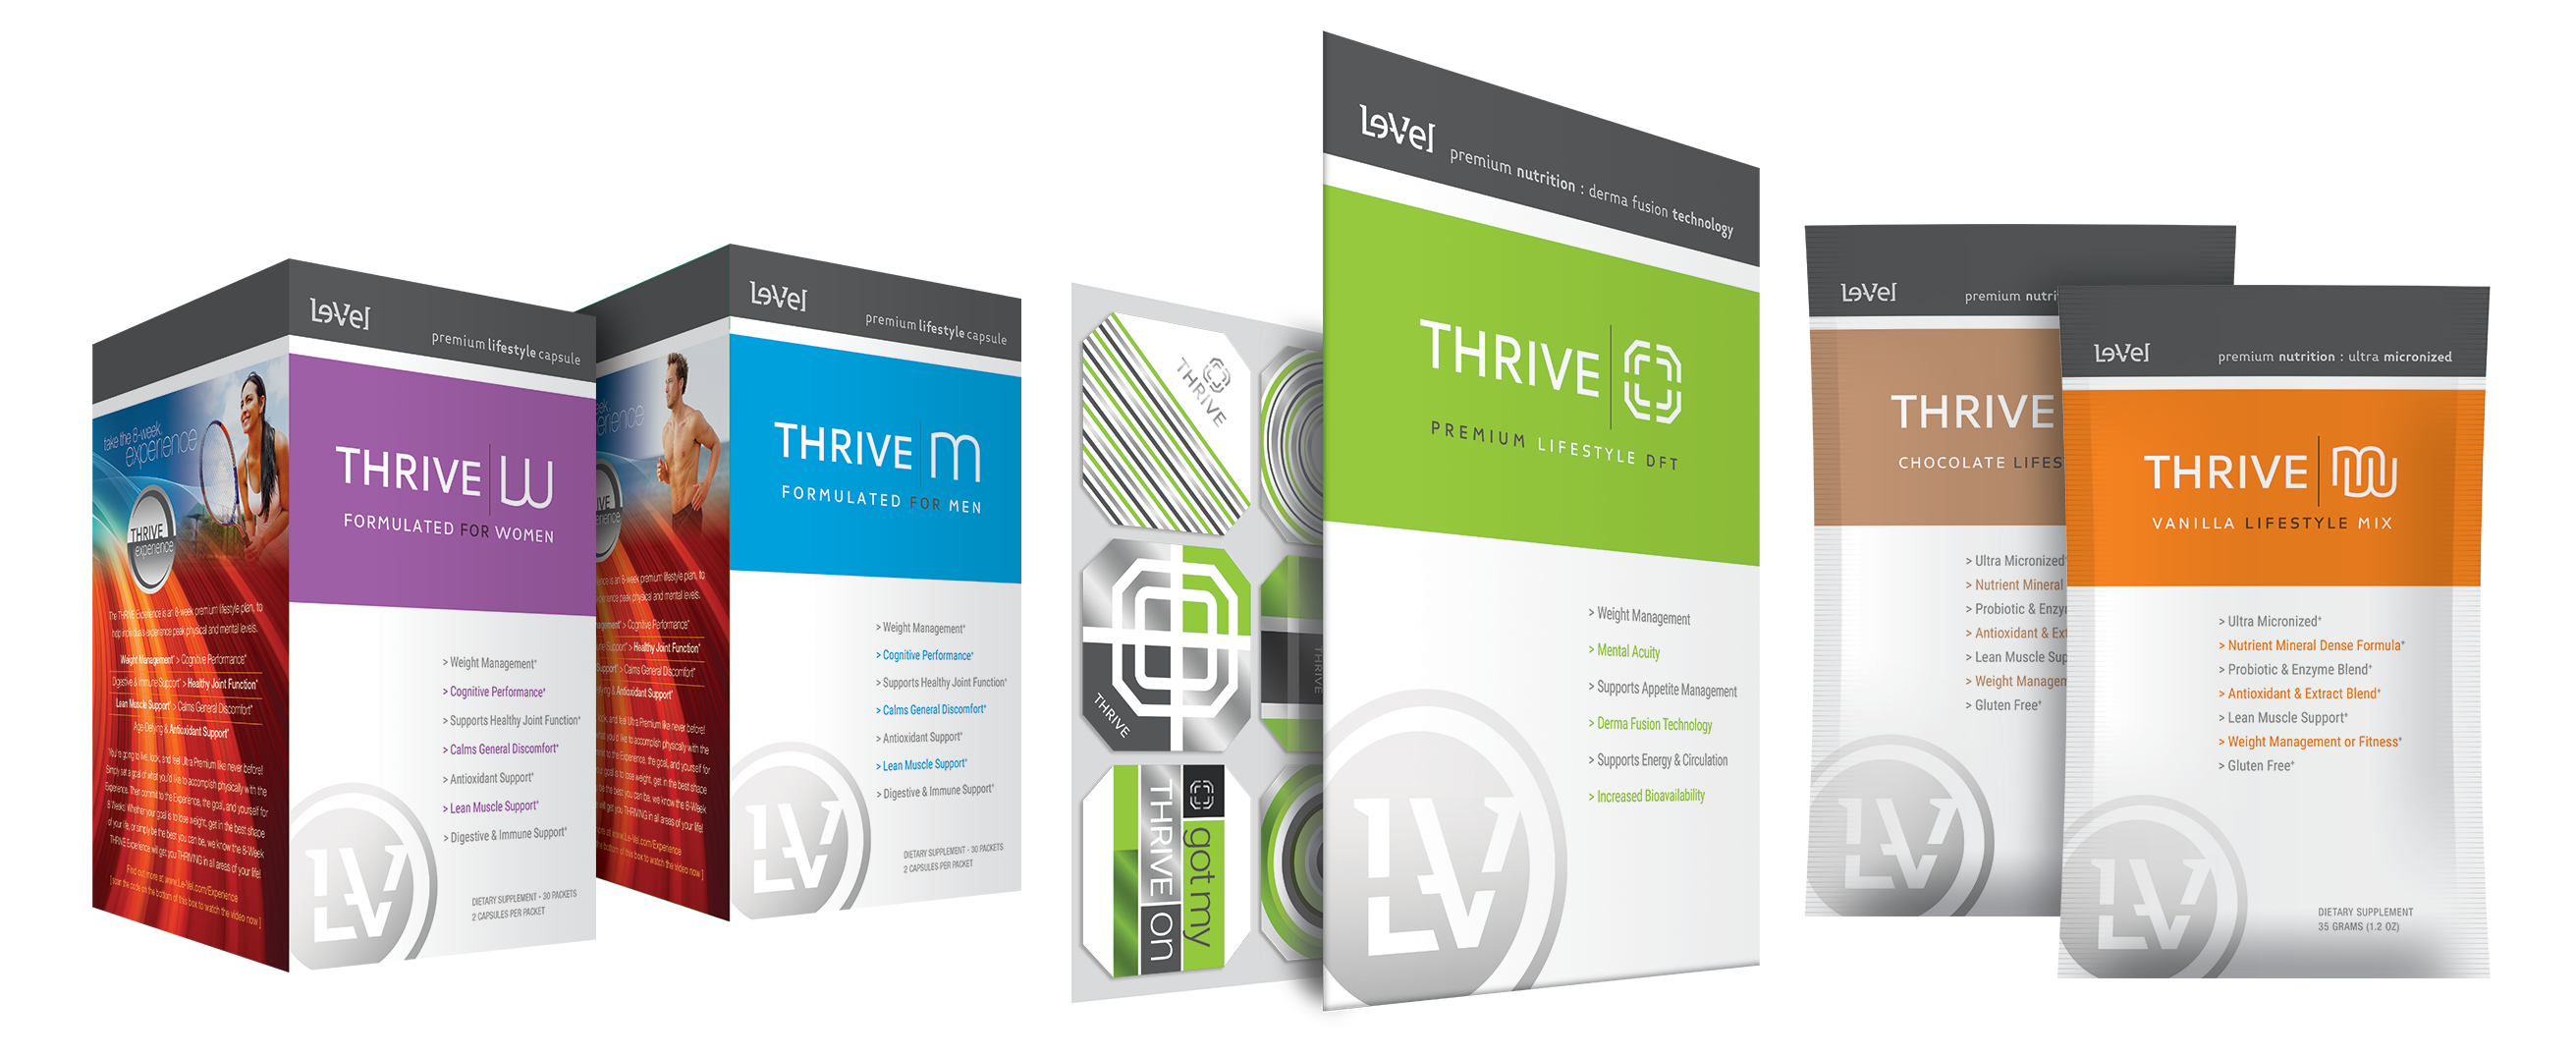 Thrive-Mix-Experience